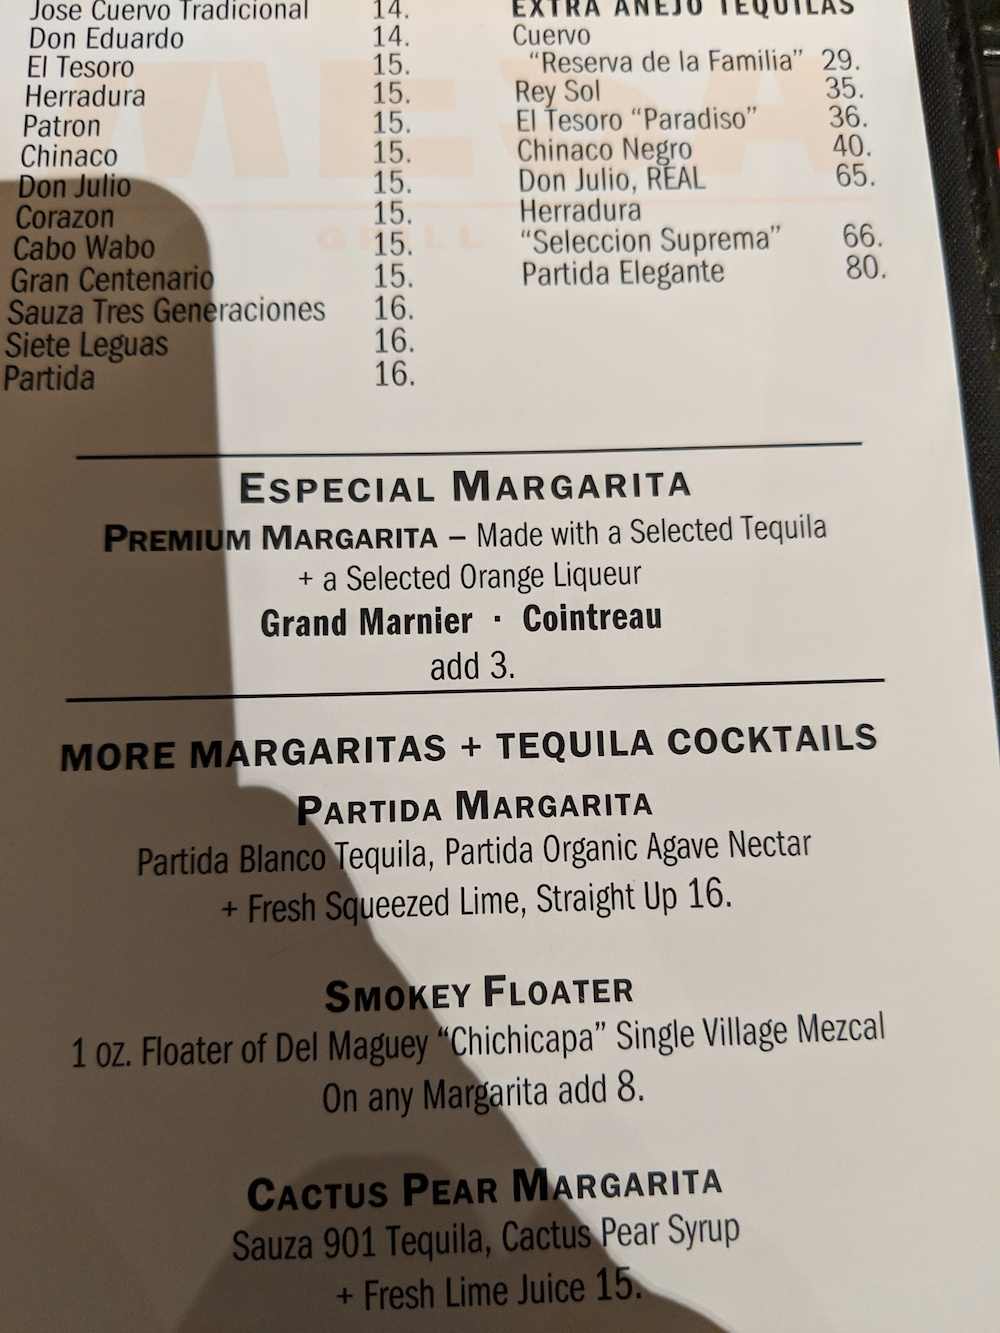 Margarita menu,